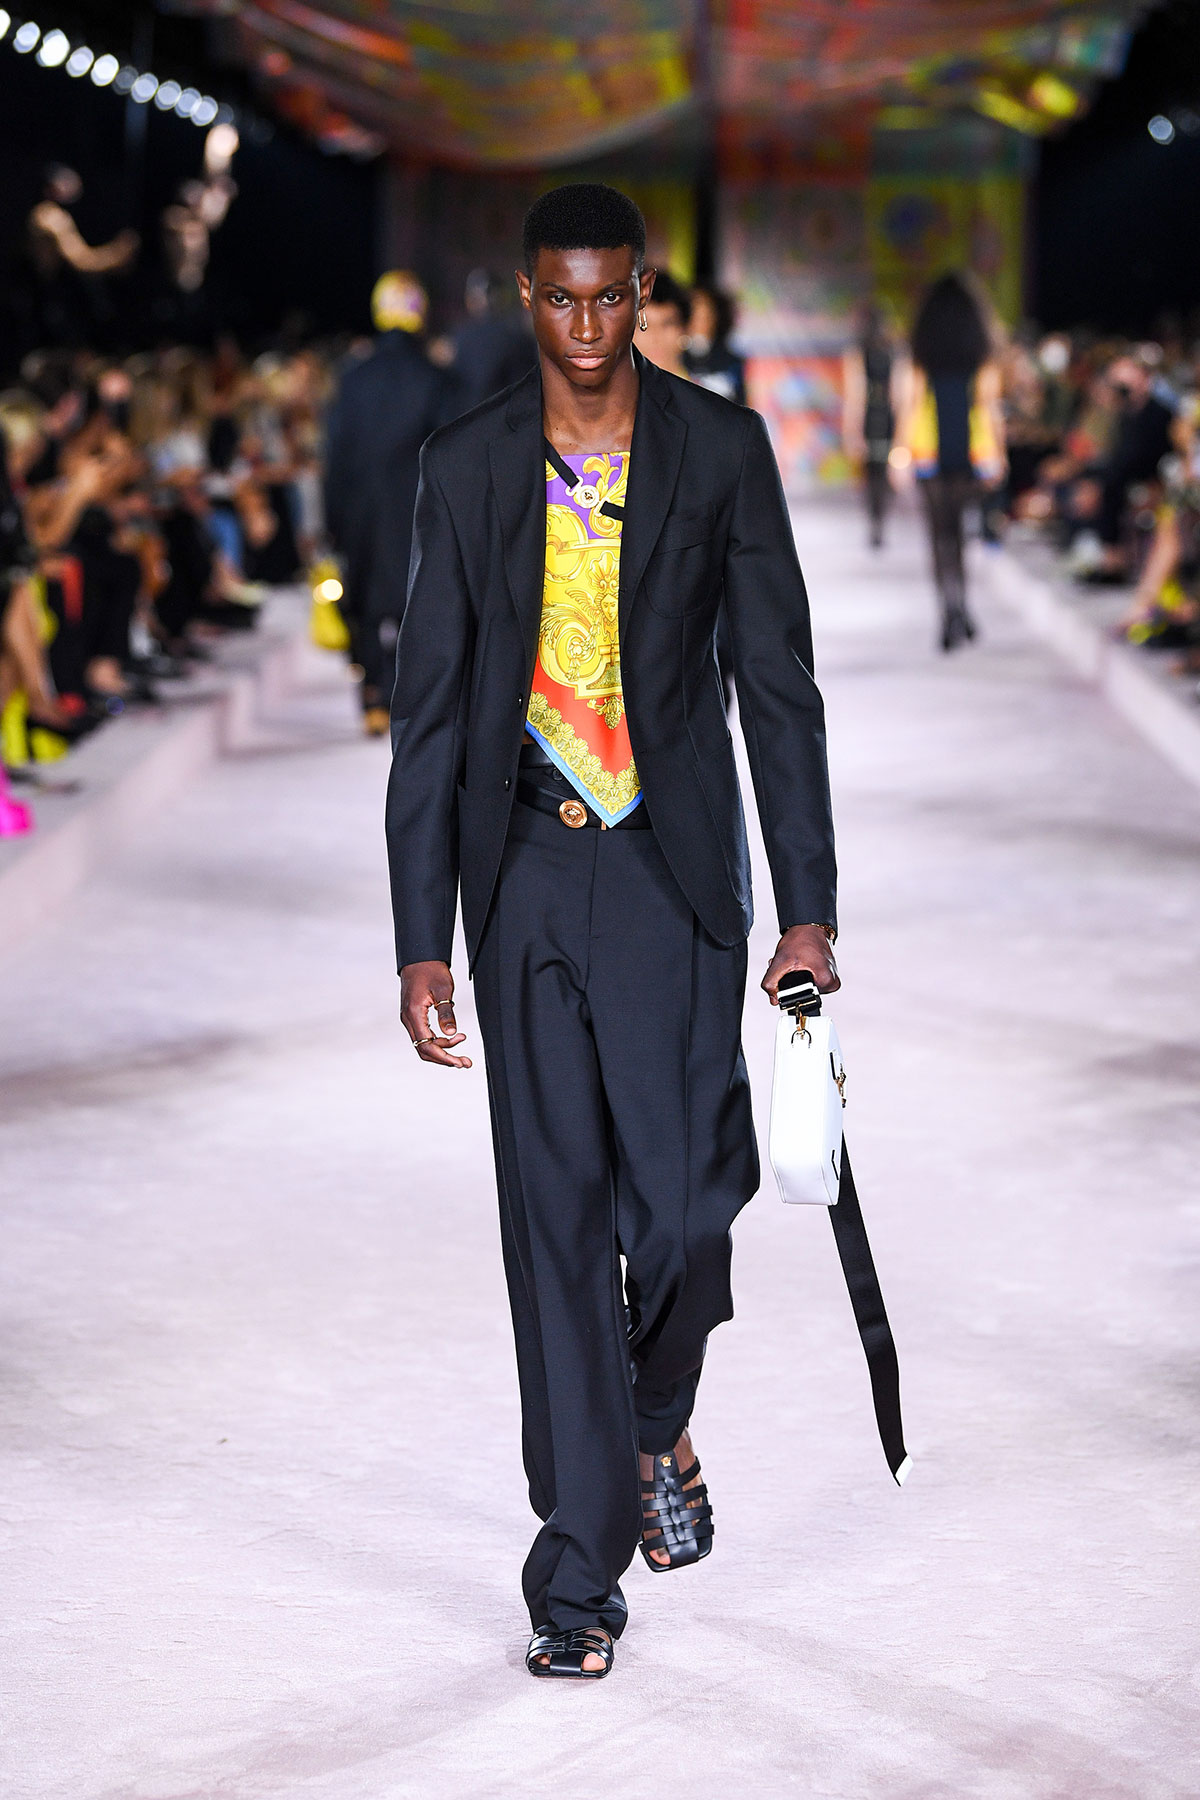 Versace Spring Summer 2022 Collection